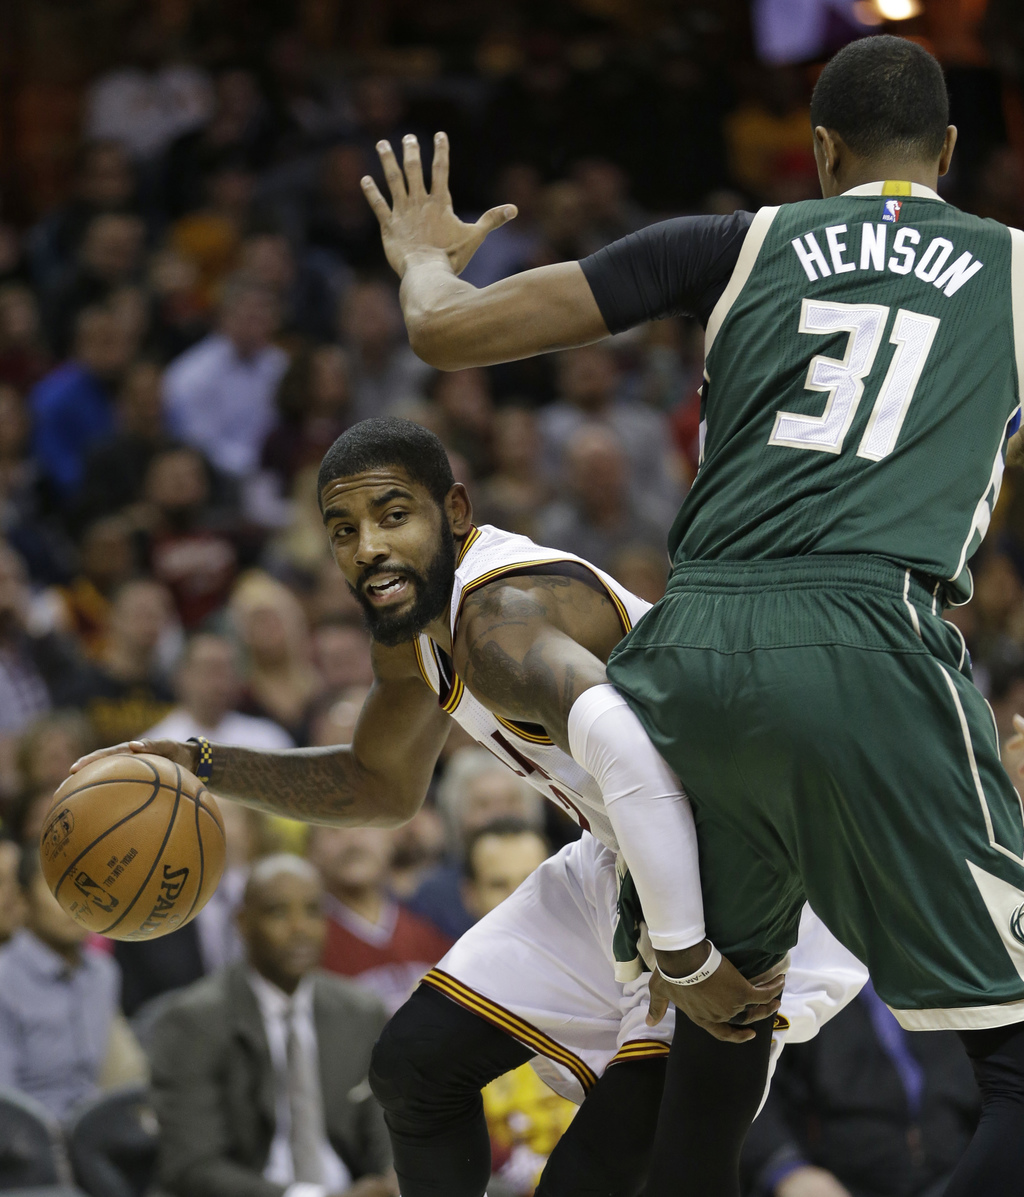 Cleveland Cavaliers' Kyrie Irving (2) drives past Milwaukee Bucks' John Henson (31) during the first half of an NBA basketball game, We...